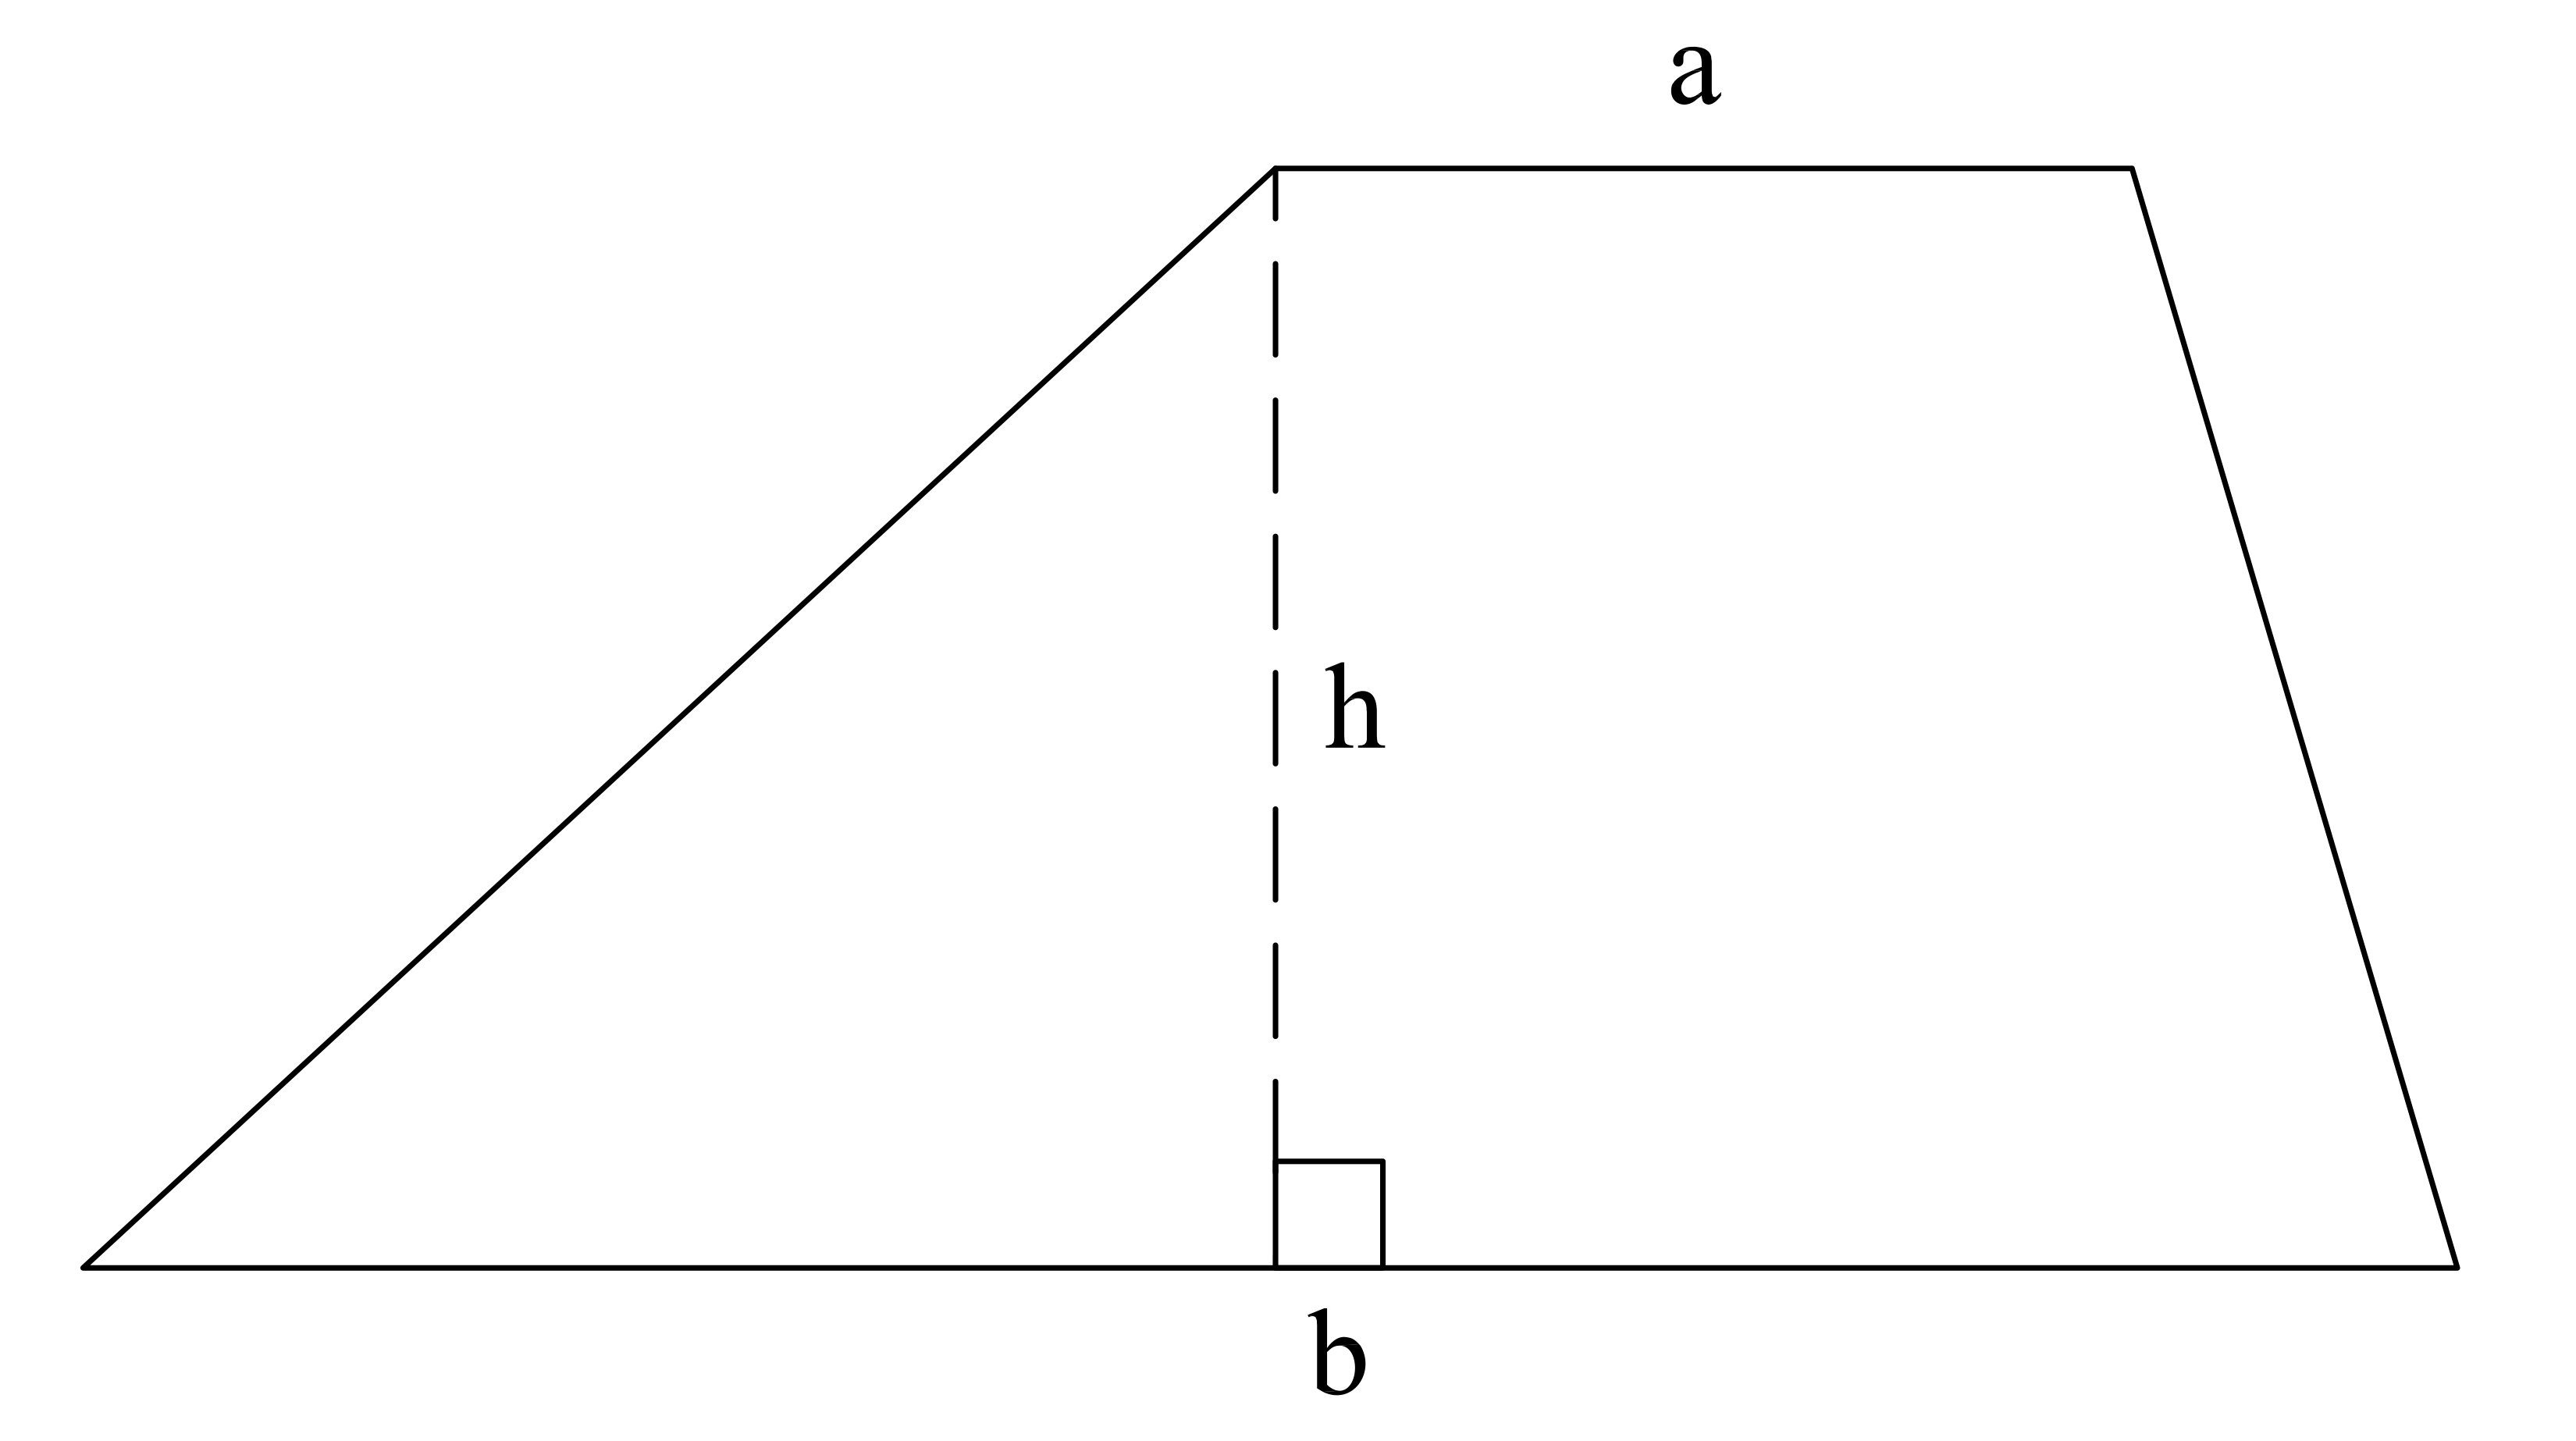 How to find the area of a trapezoid high school math example question 1 how to find the area of a trapezoid ccuart Choice Image